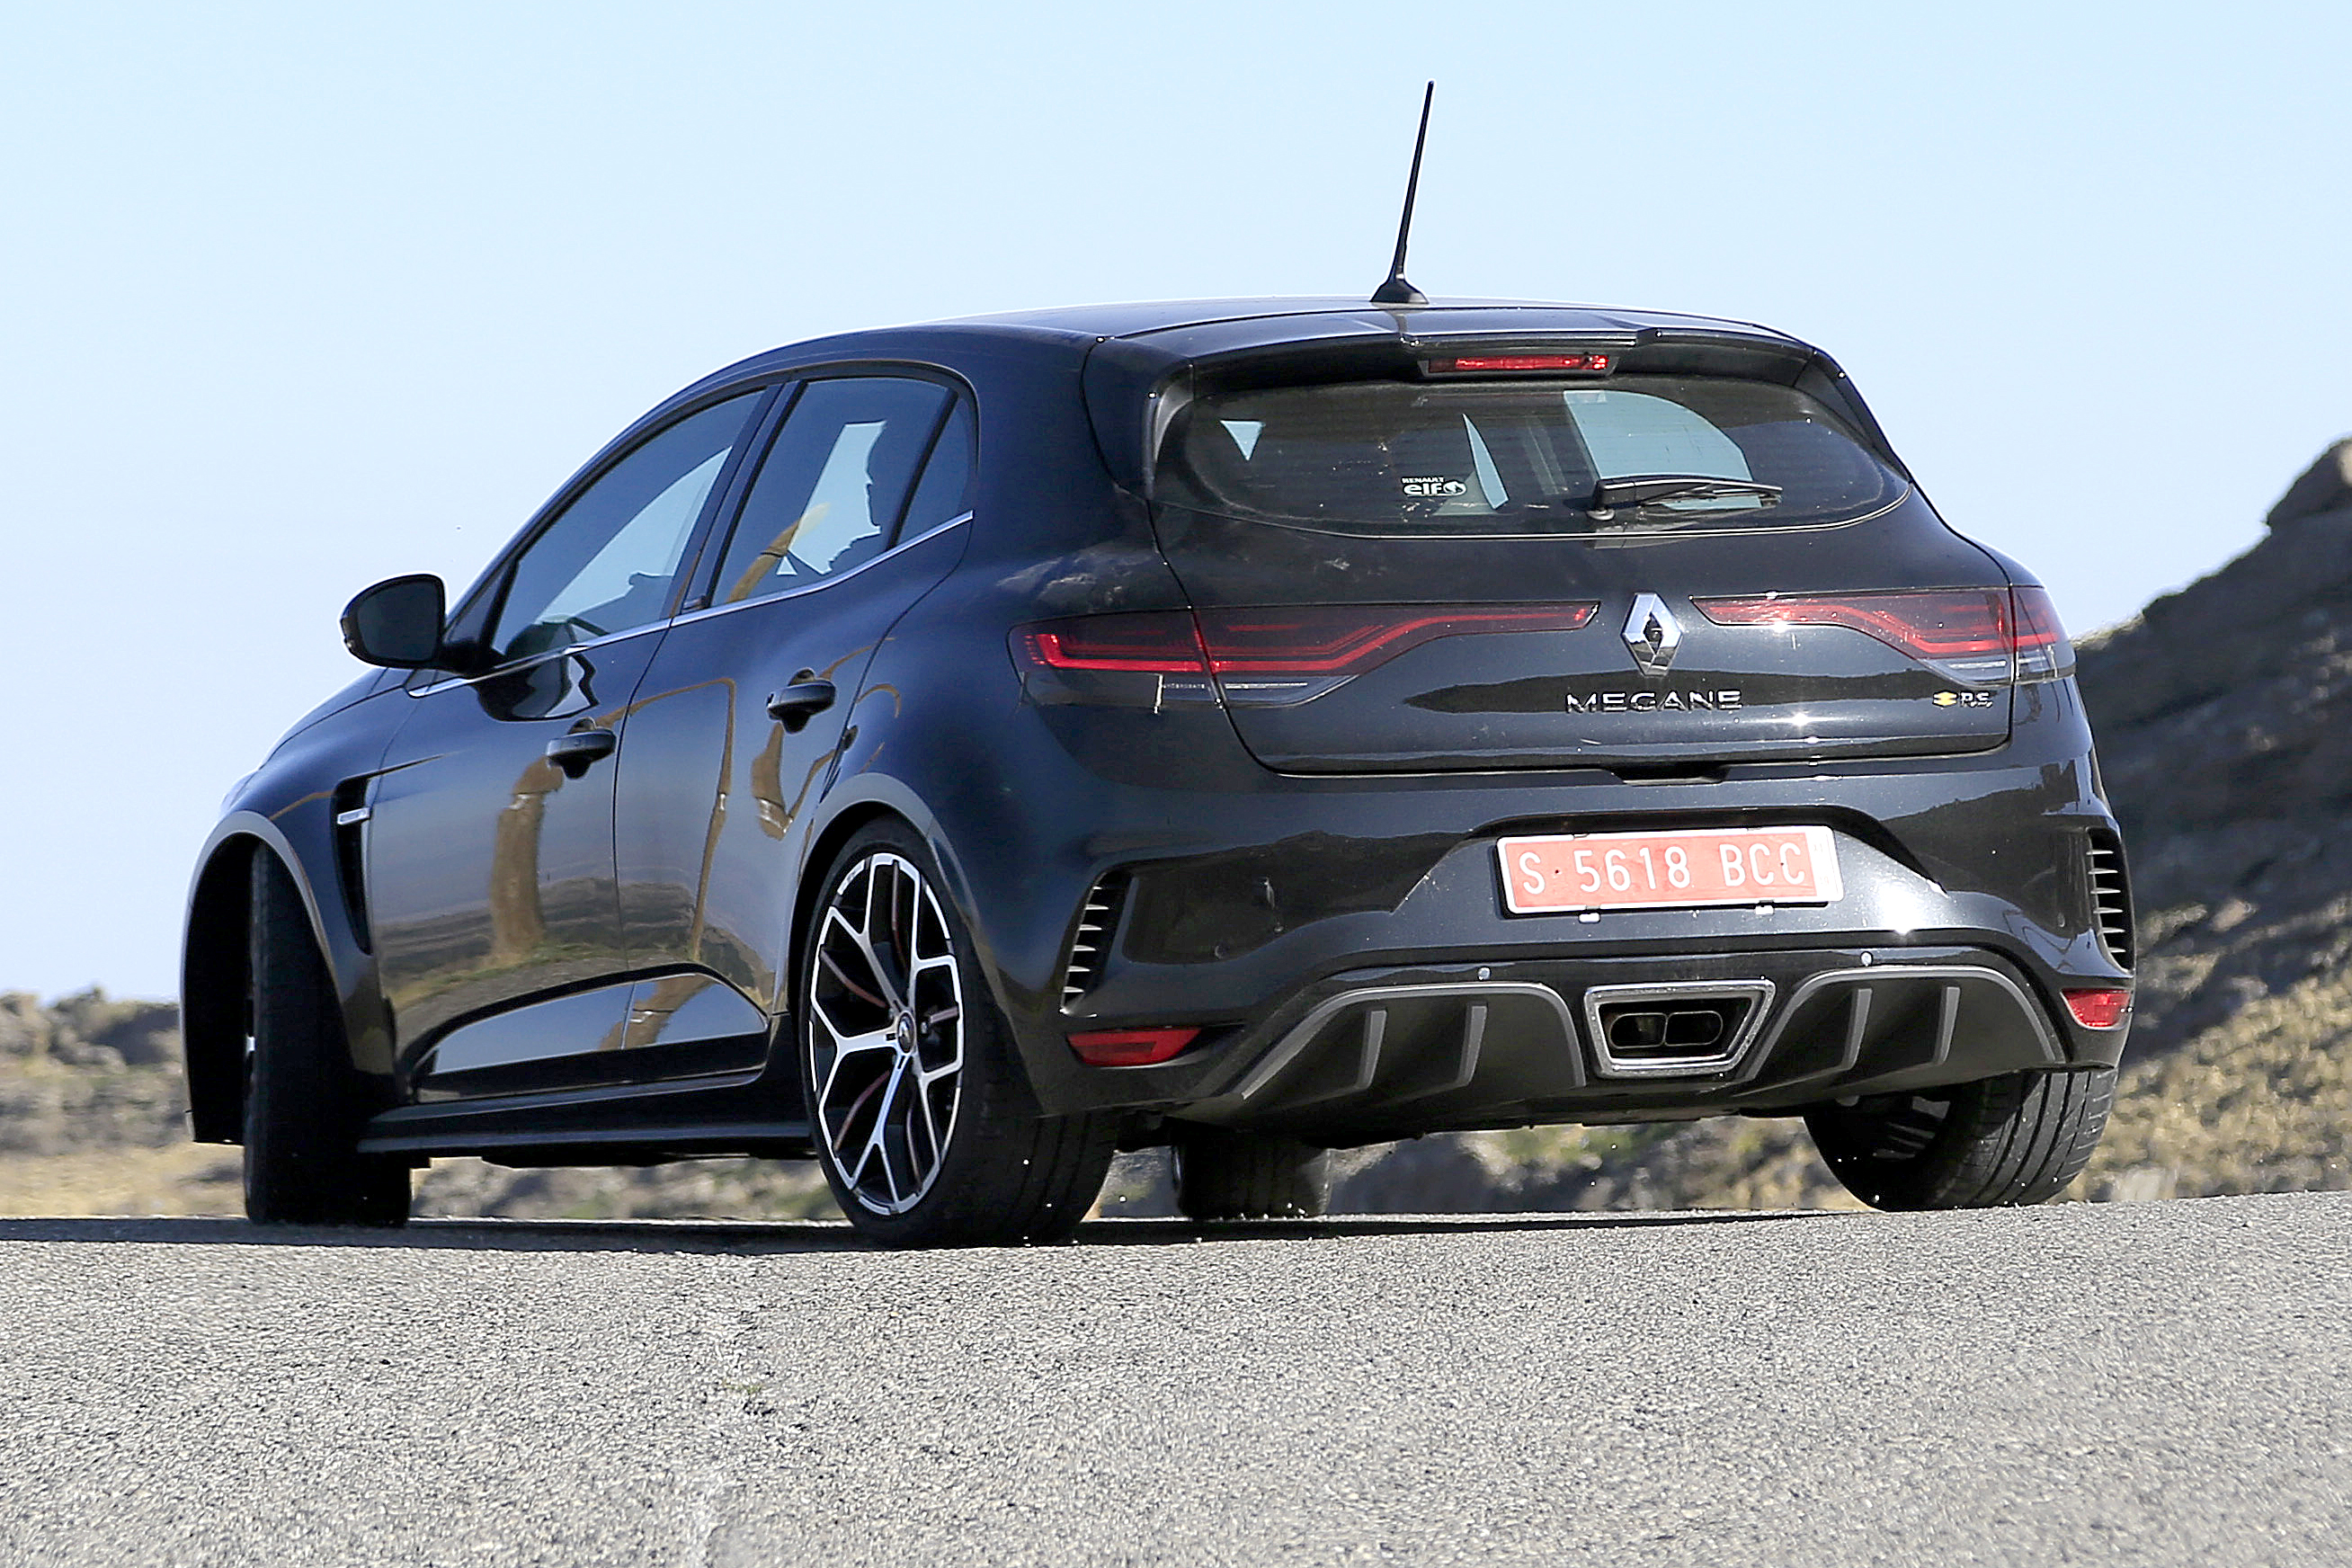 2020 Renault Megane Rs Spied Testing Ahead Of Reveal Pictures Evo